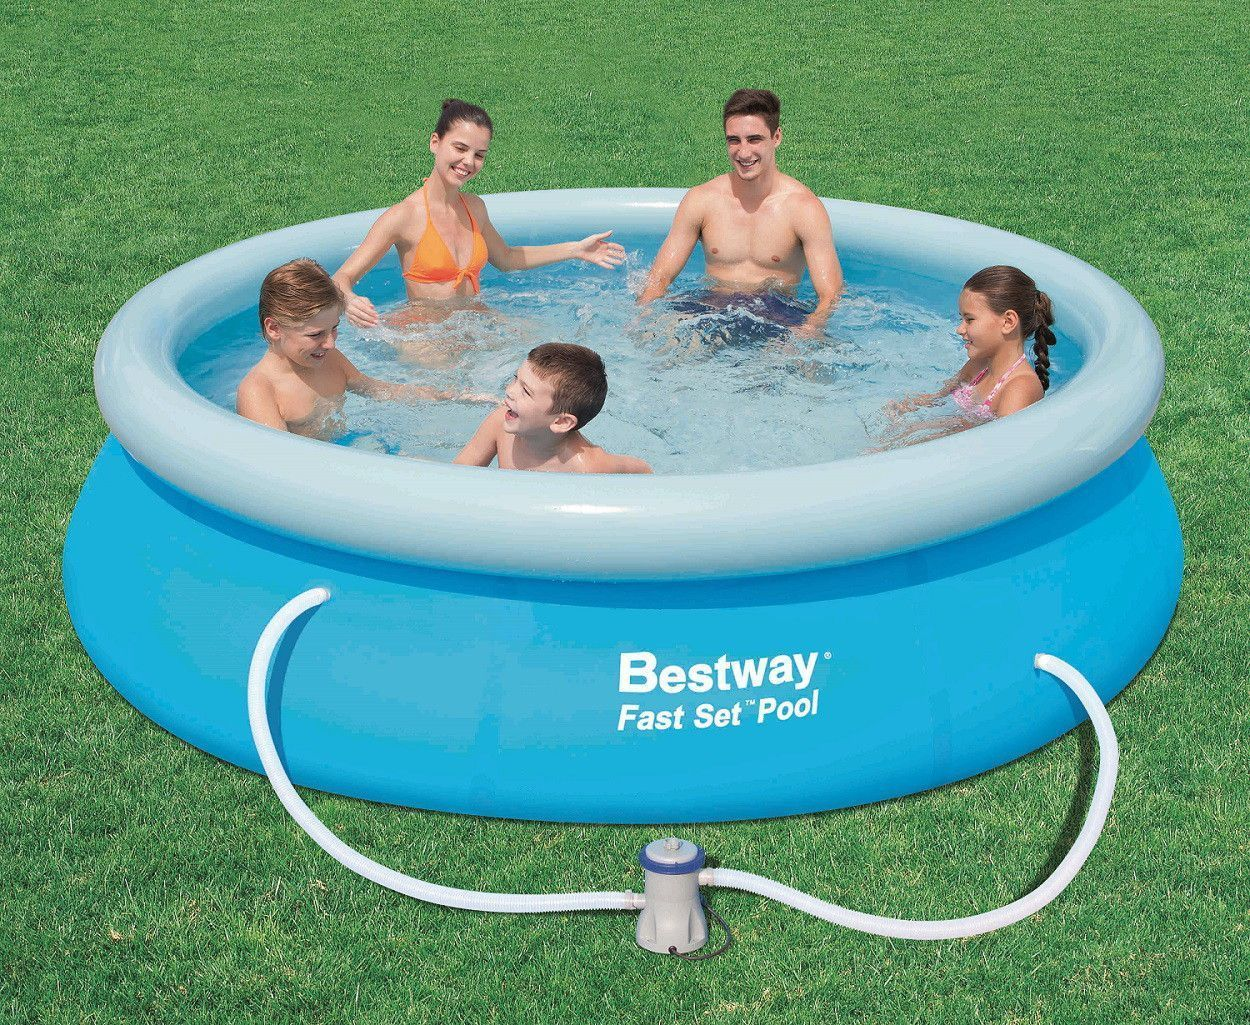 Piscina hinchable fast set de 274 x 76 cm con depuradora for Piscina pequena desmontable con depuradora